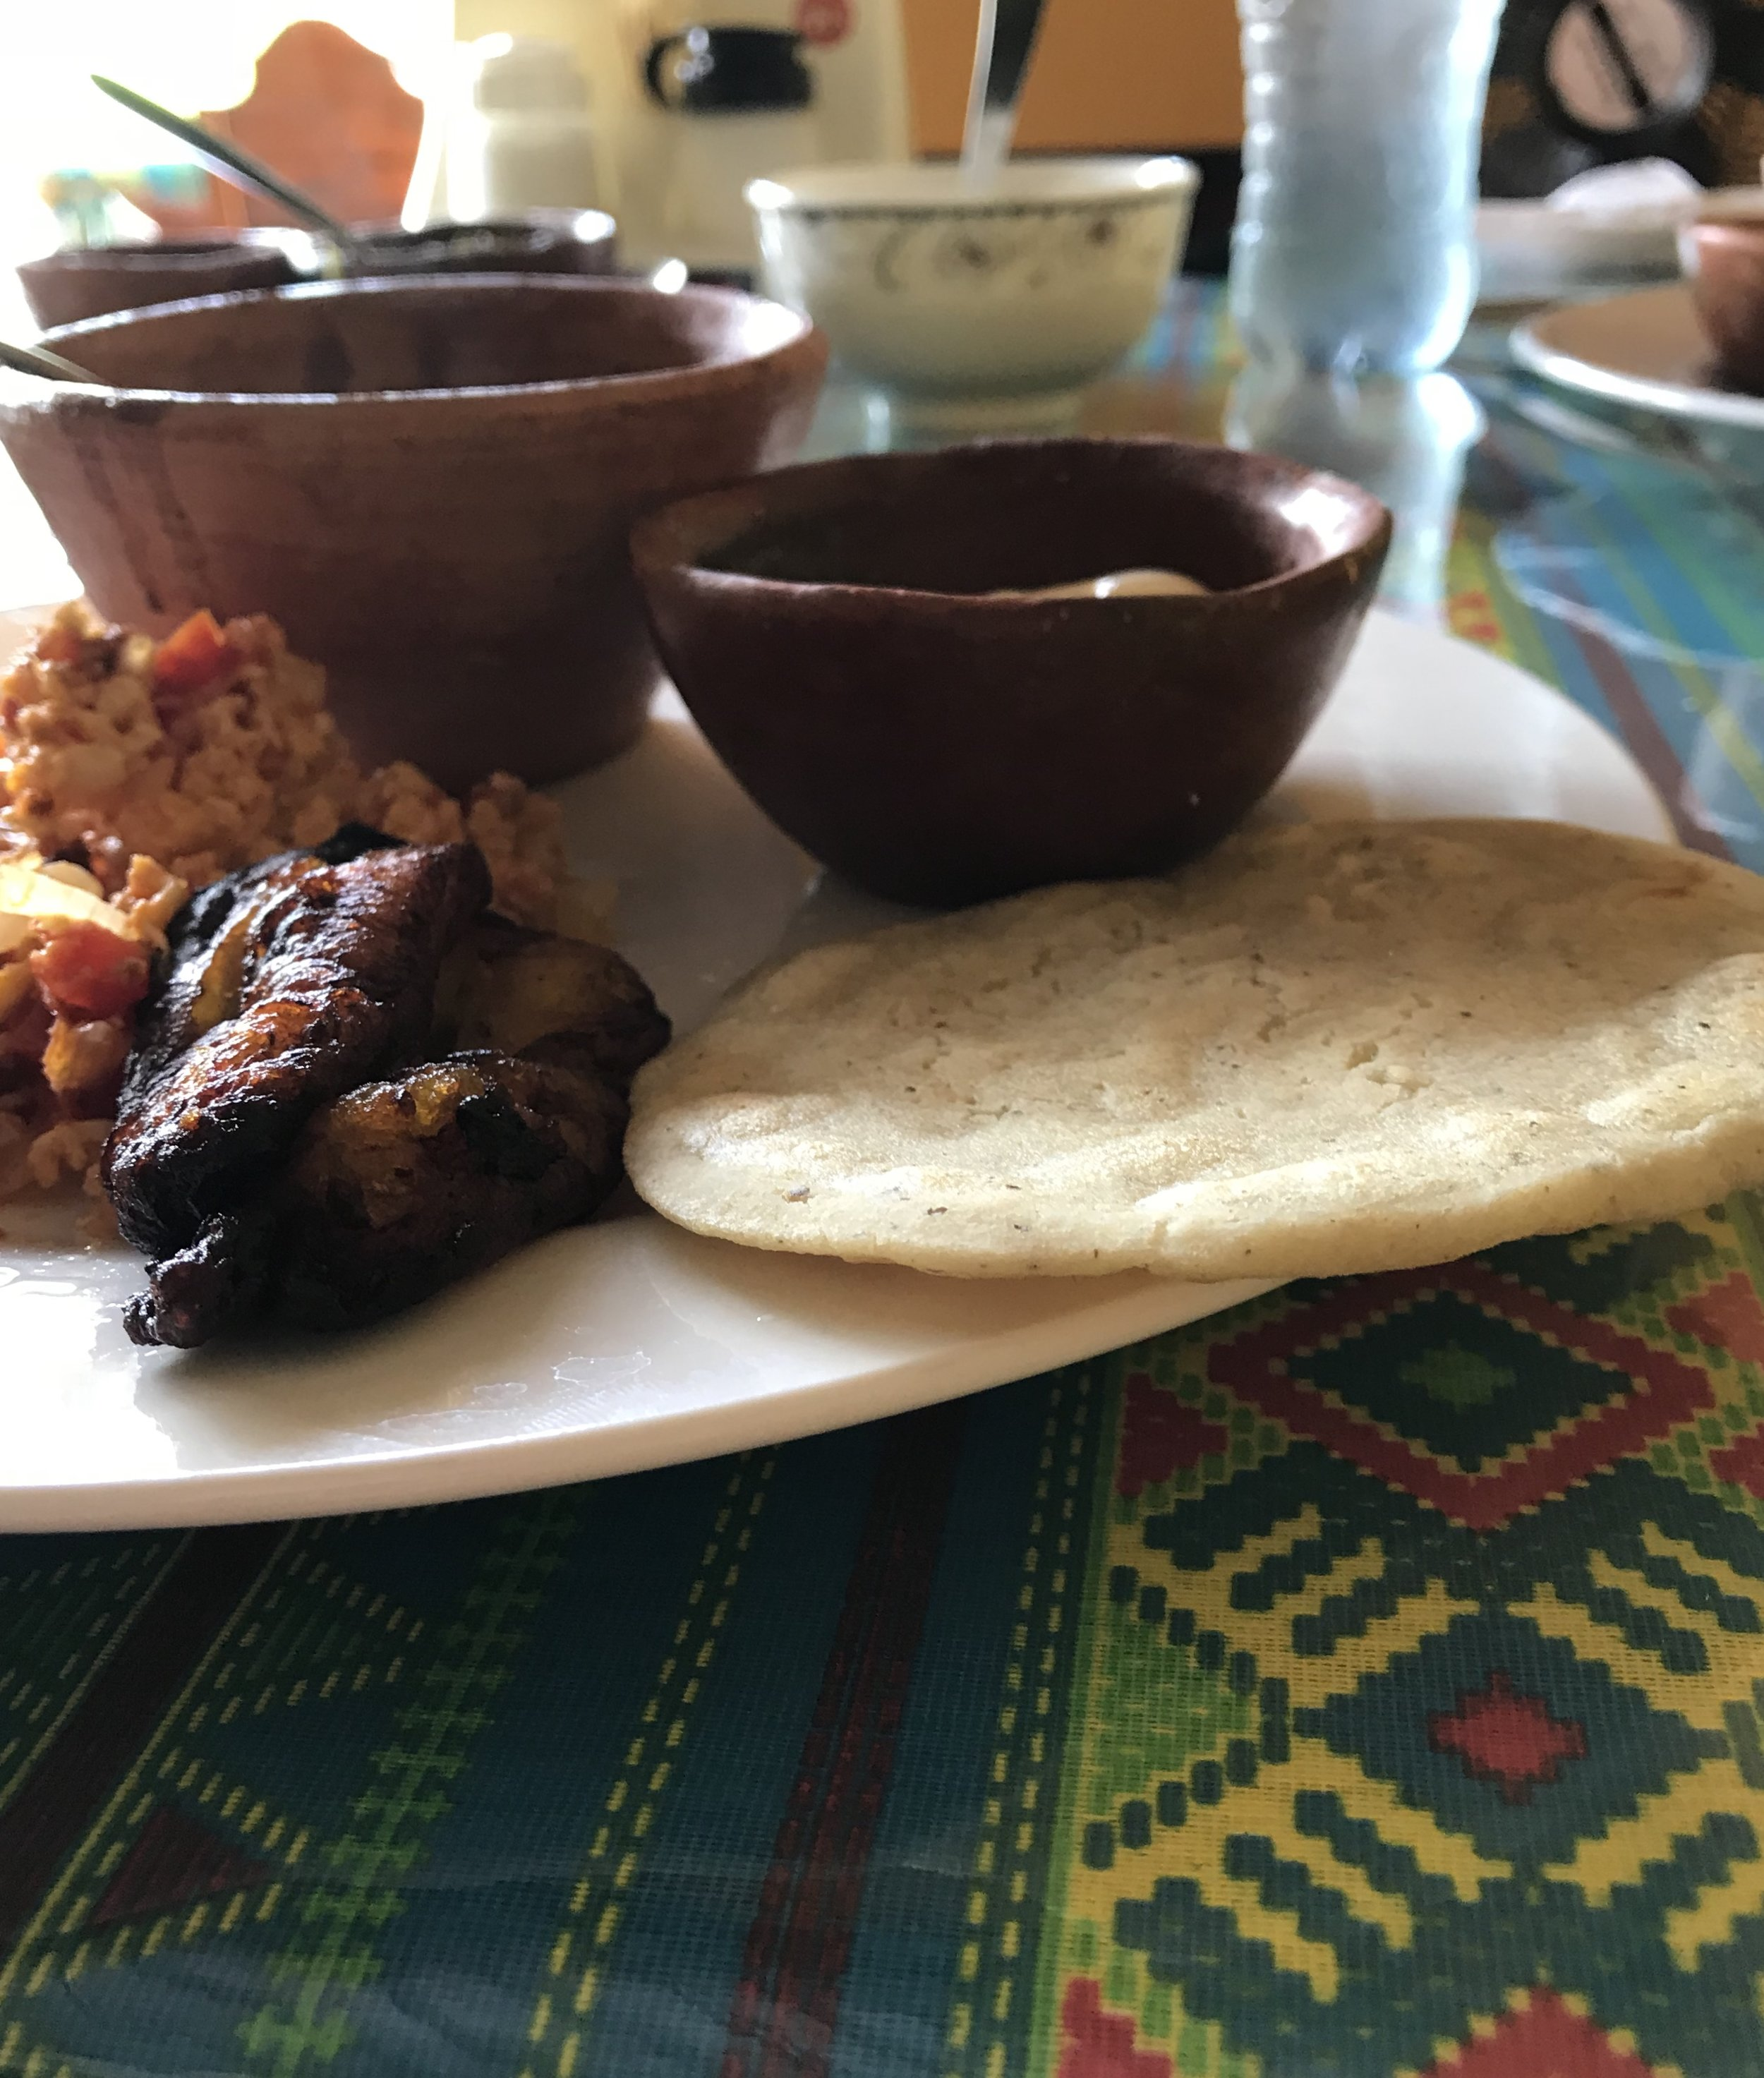 Guatemala may not be known for it's food, but I found it to be absolutely delicious. And super fresh.